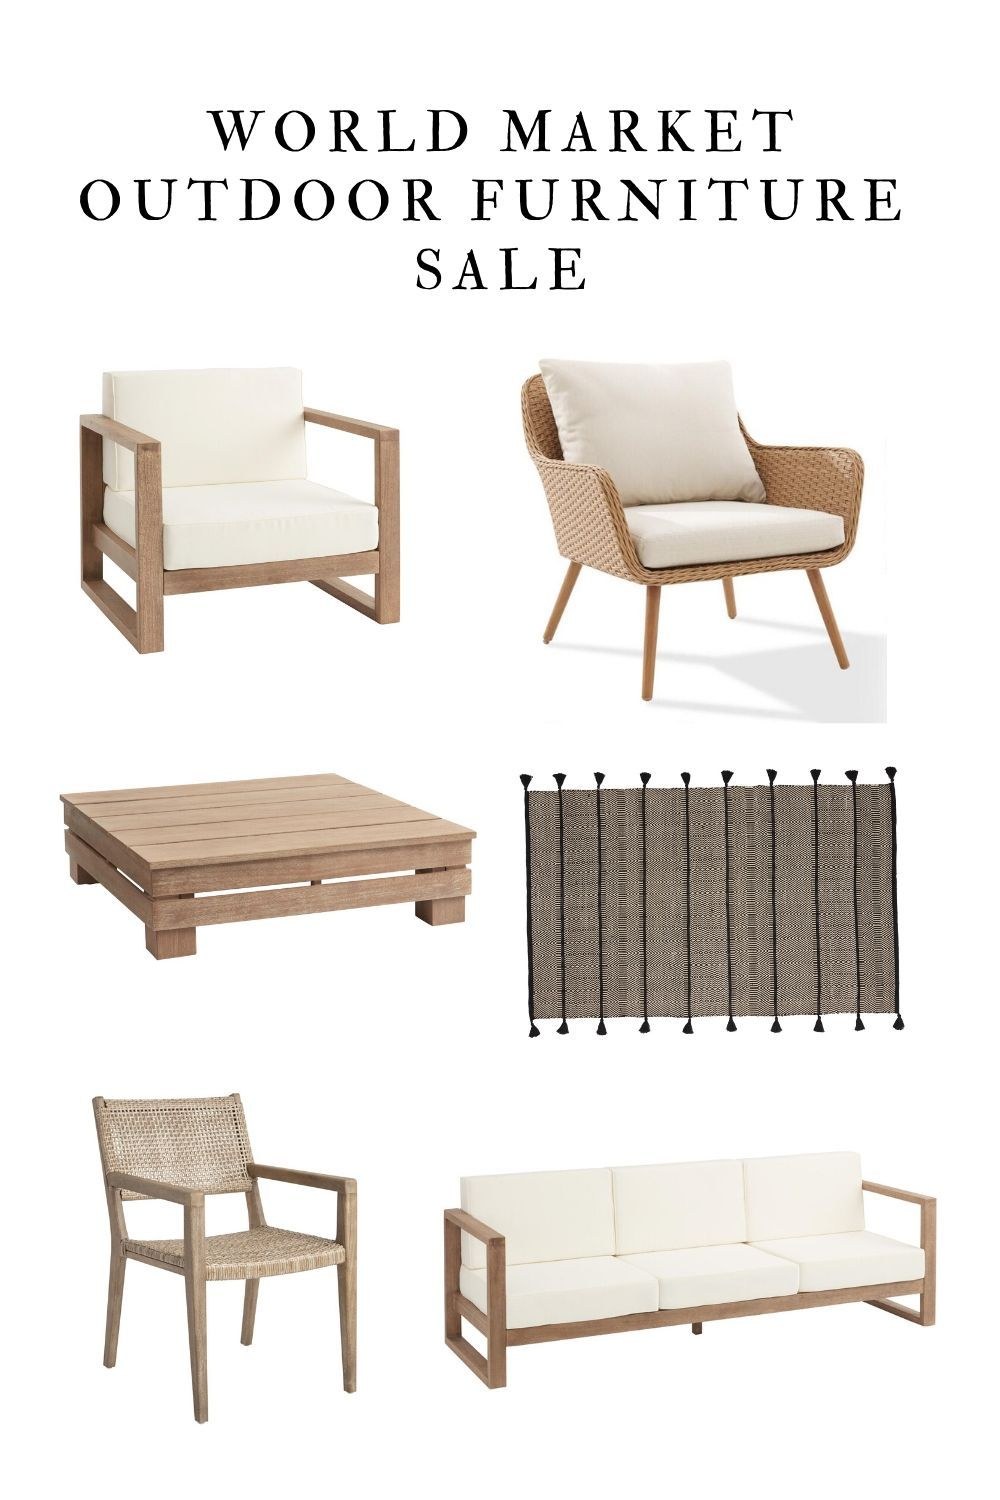 40 Off Sale On Outdoor Furniture At World Market I Rounded Up My Favorites In 2020